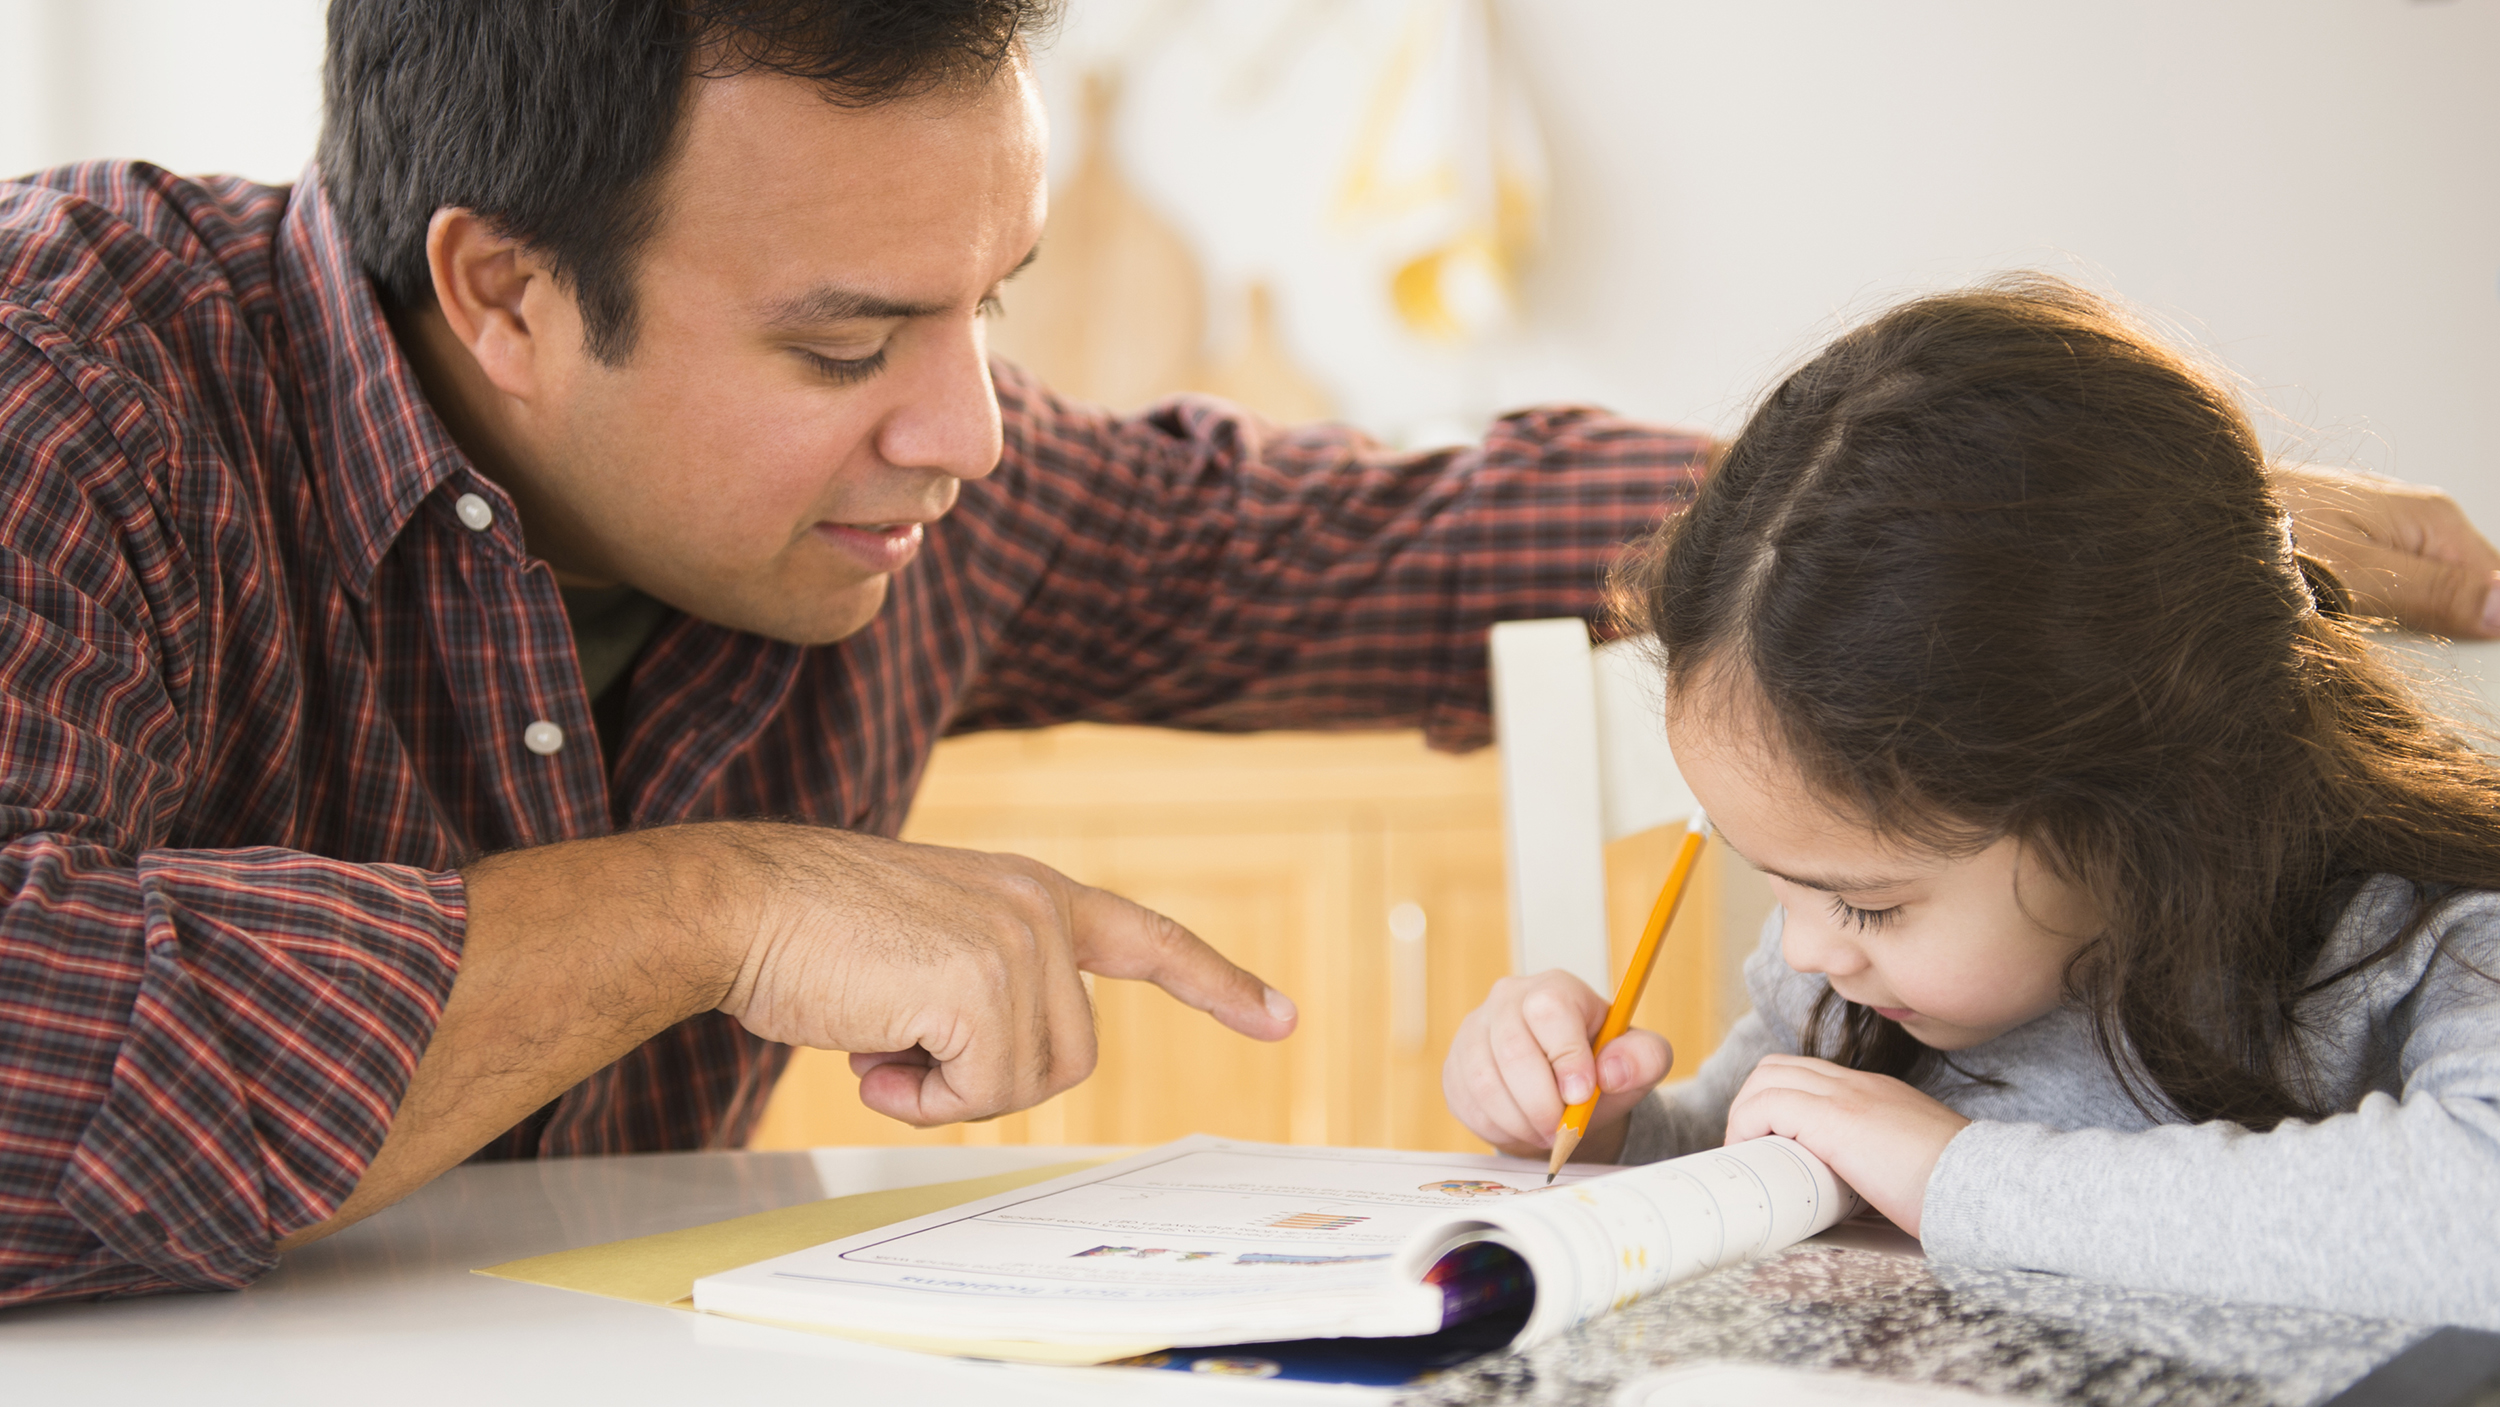 Do students benefit from homework